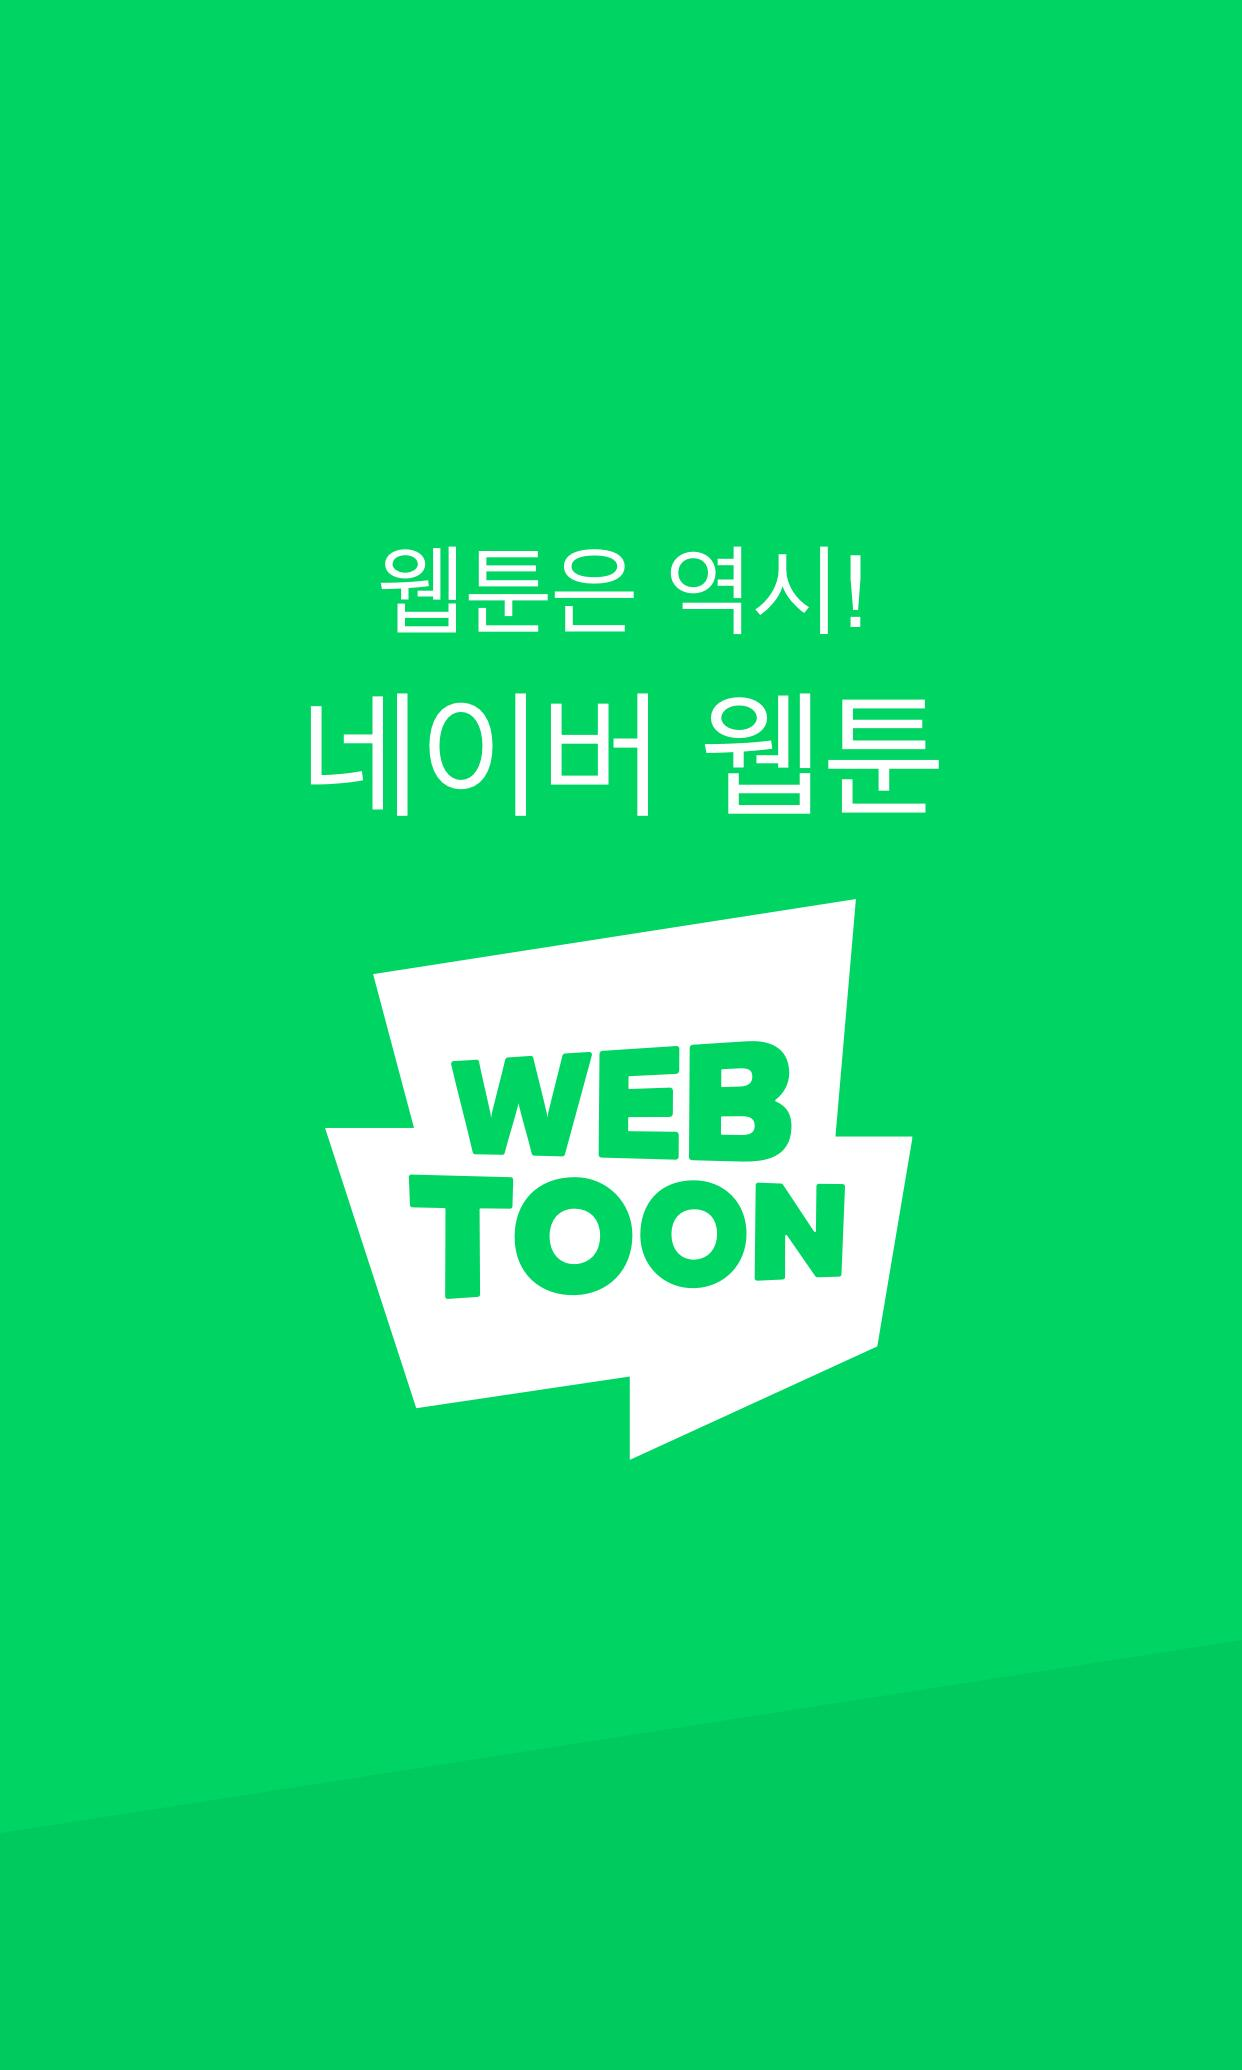 네이버 웹툰 - Naver Webtoon for Android - APK Download